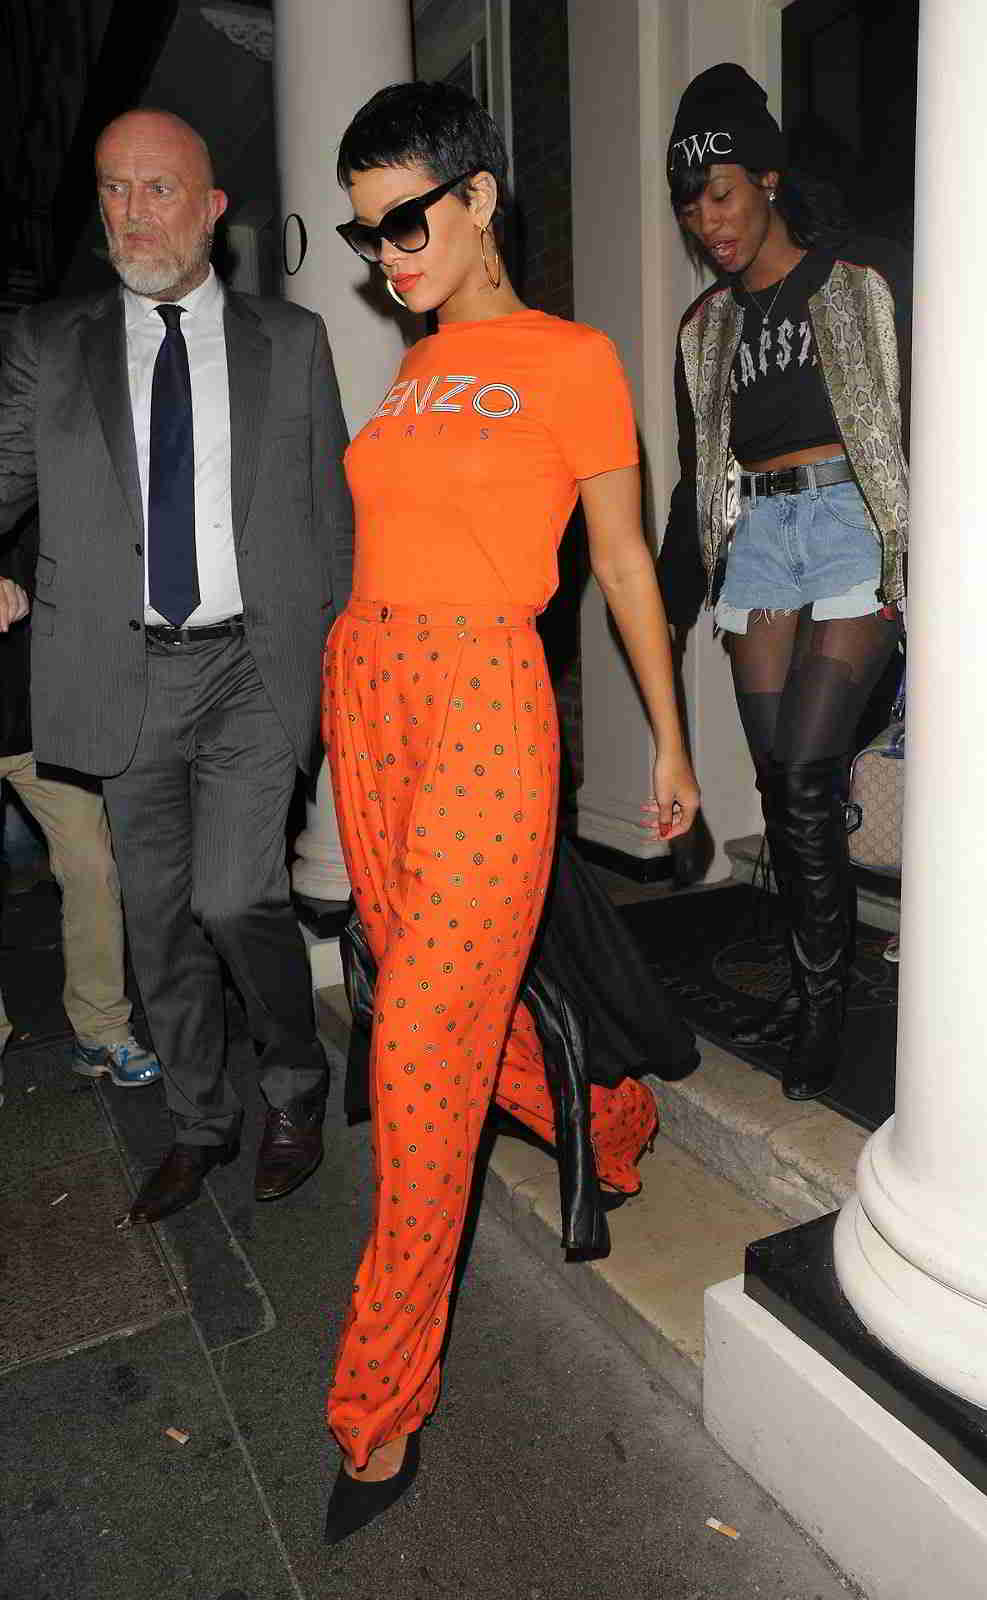 Rihanna Style Dress Jandese Reped